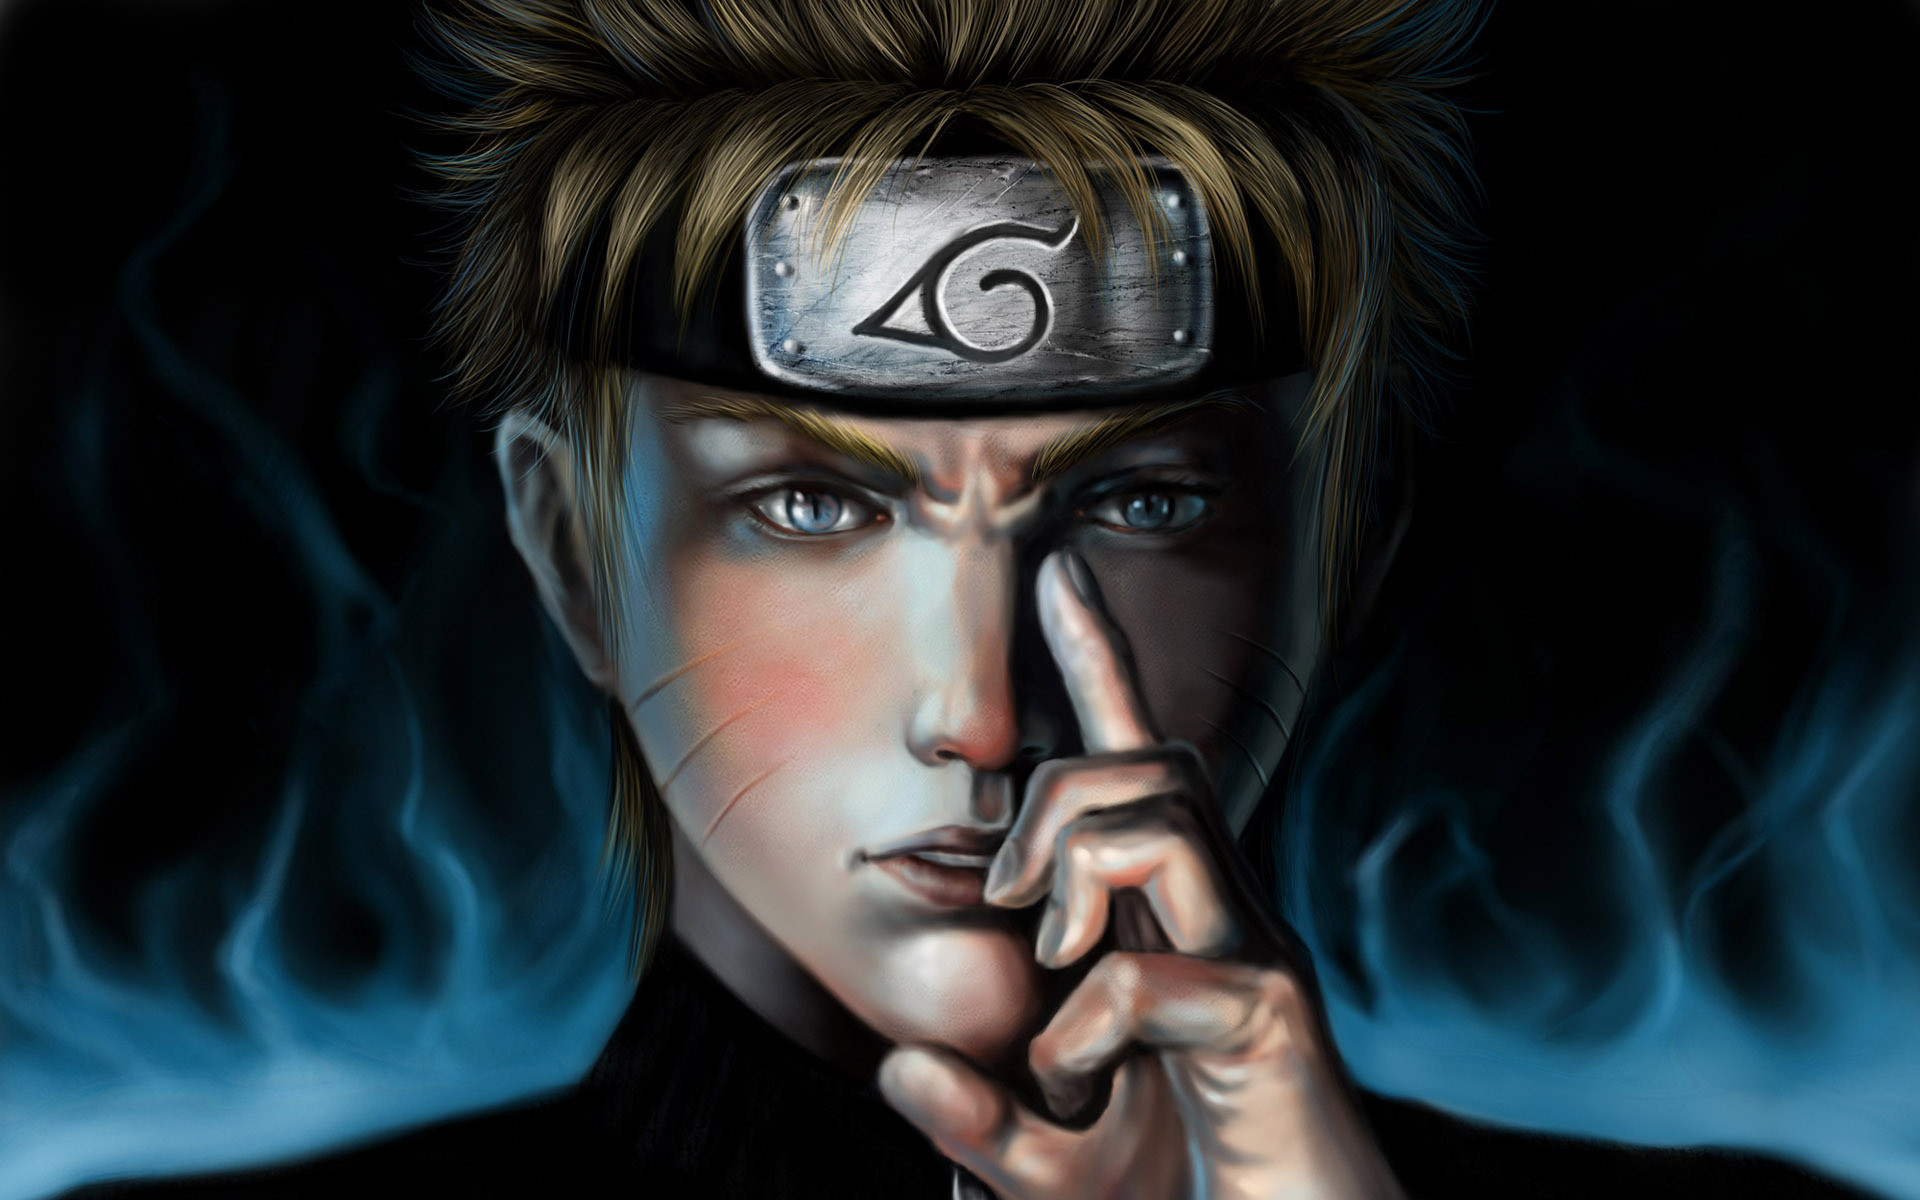 1920x1200 Naruto Uzumaki HD Wallpaper 1920x1080 Naruto Uzumaki HD Wallpaper